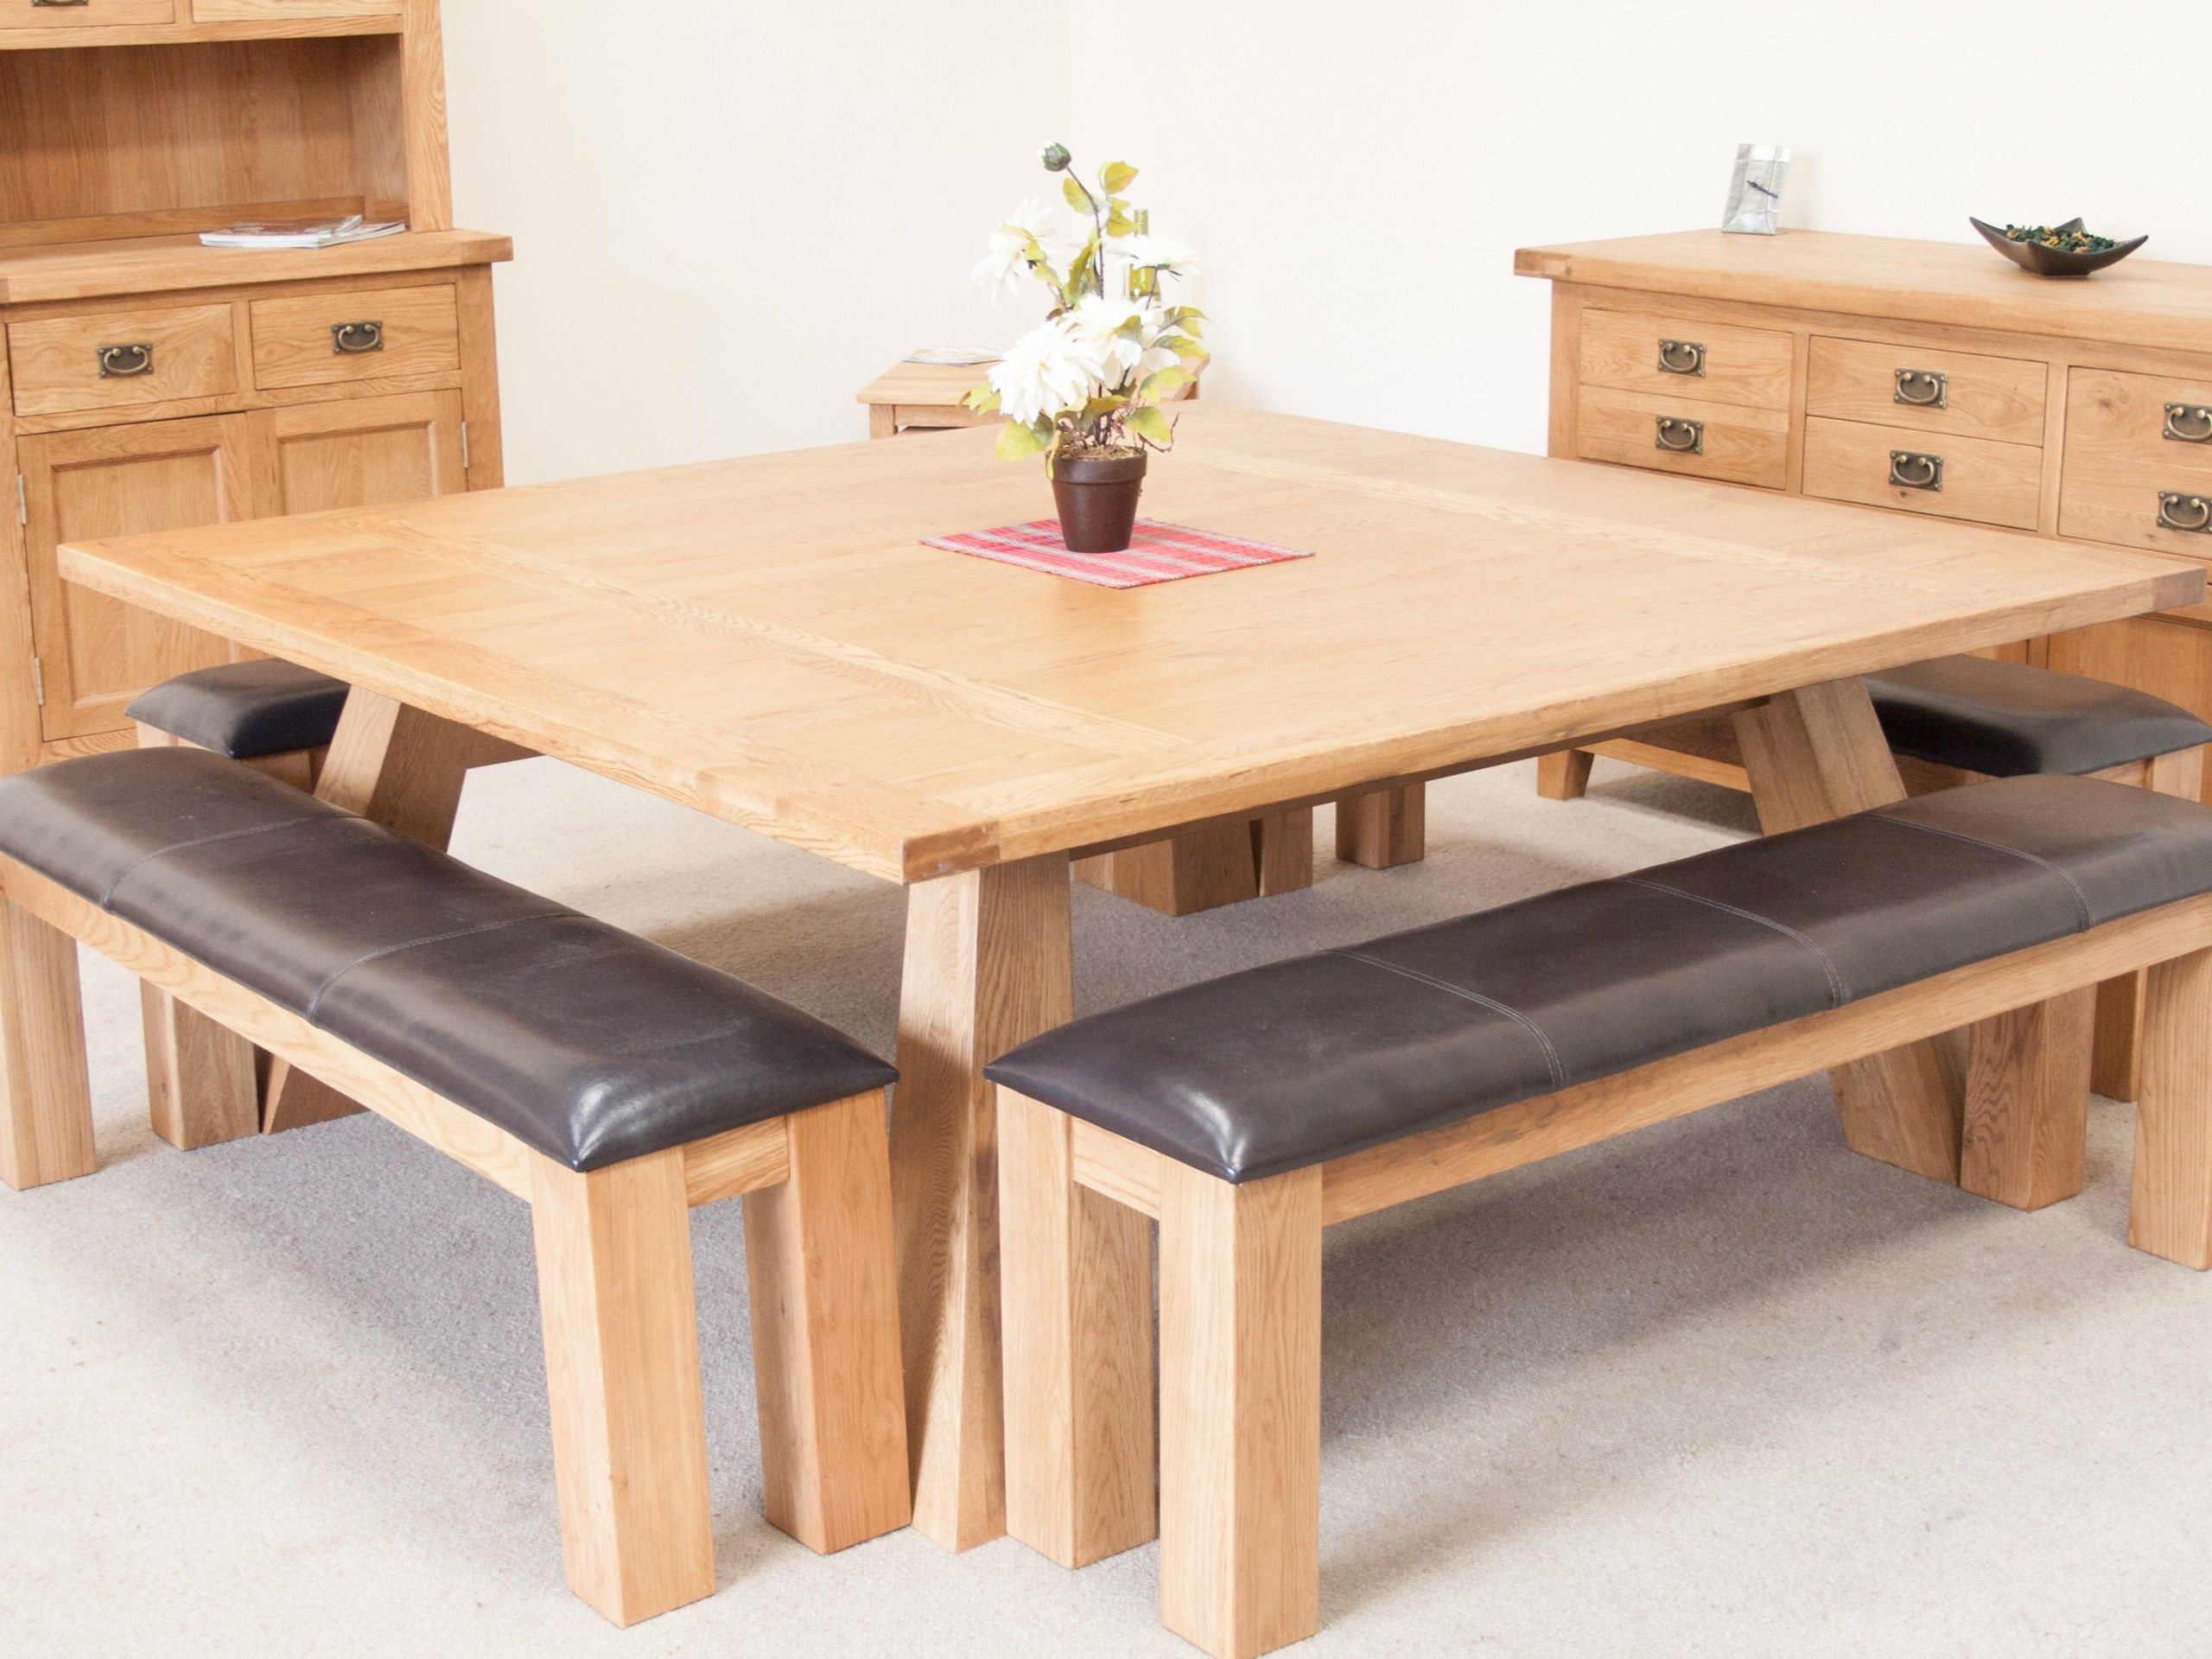 Country Oak 1 8m Large Square Oak Dining Room Table Oak Dining